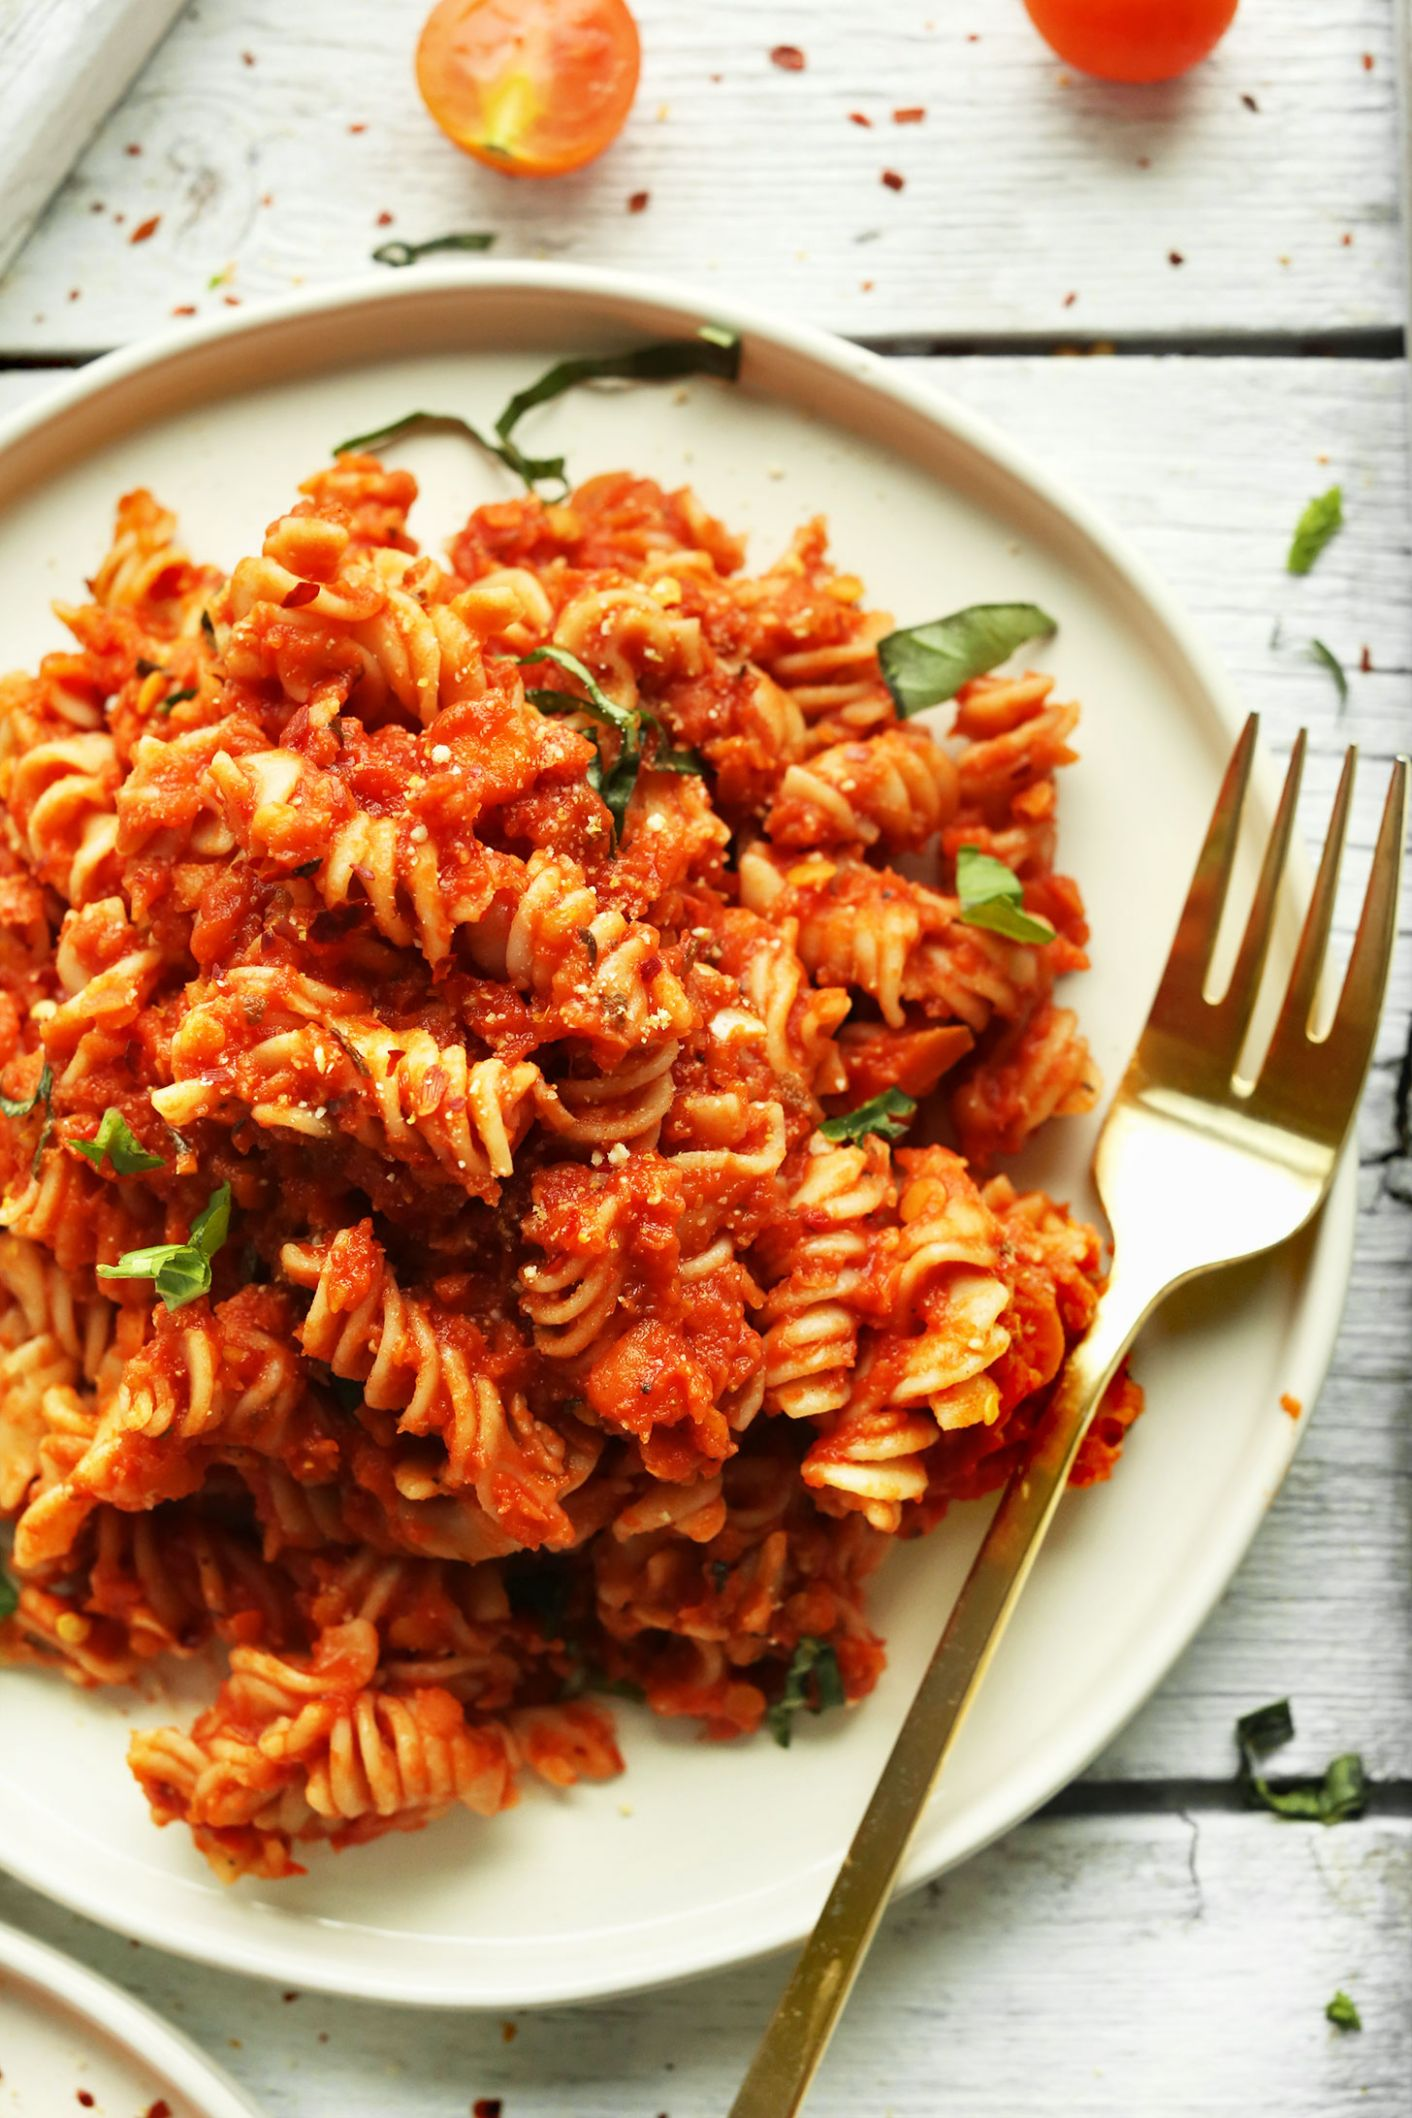 Spicy Red Pasta with Lentils - Pasta Recipes Red Sauce Veg